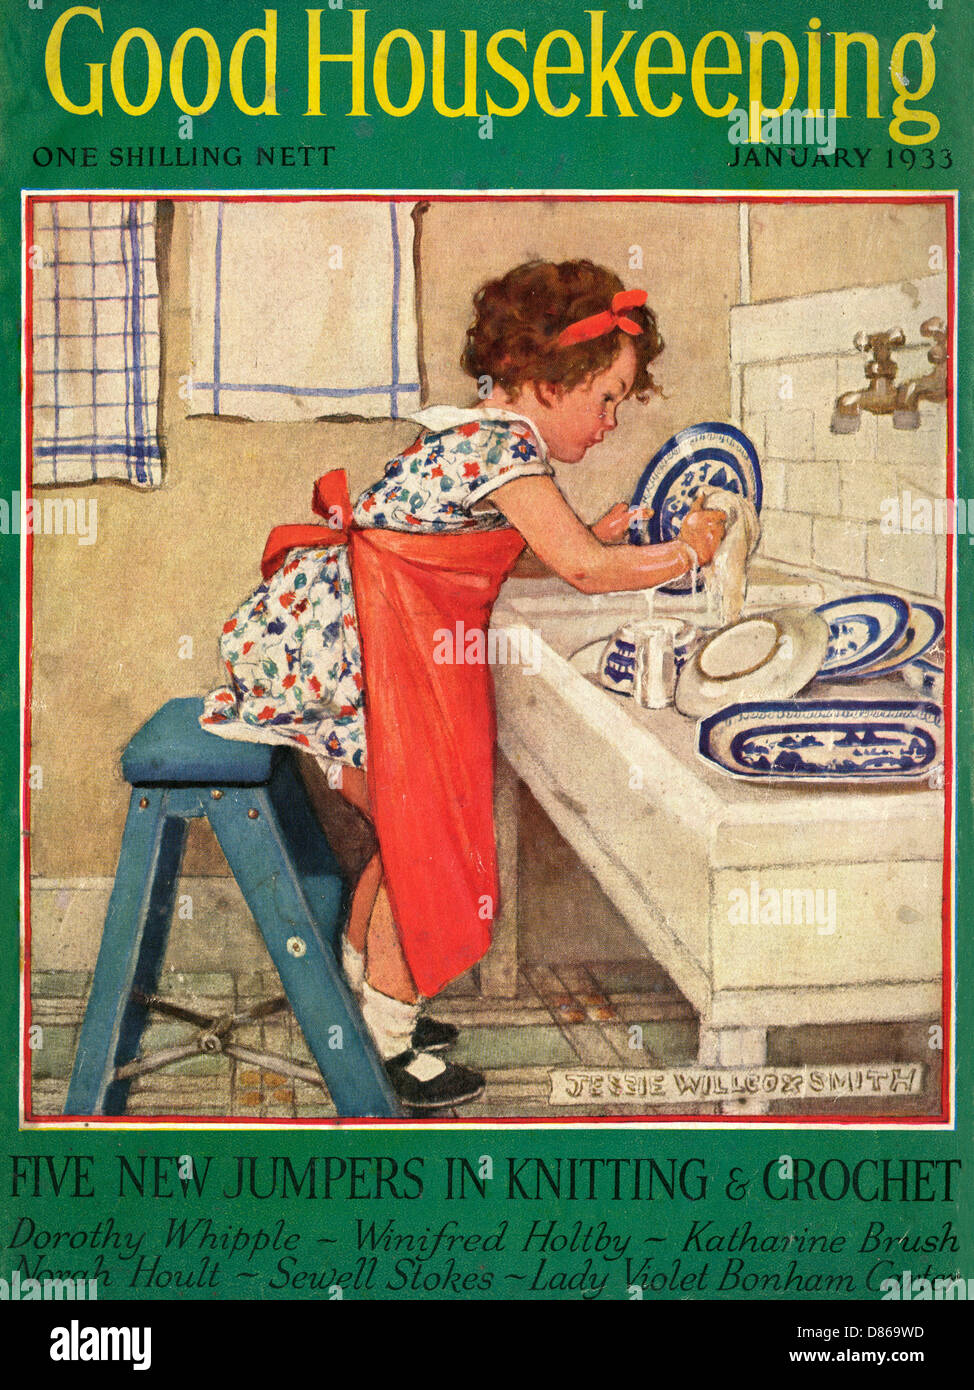 Good housekeeping front cover january 1933 stock photo for Good house magazine